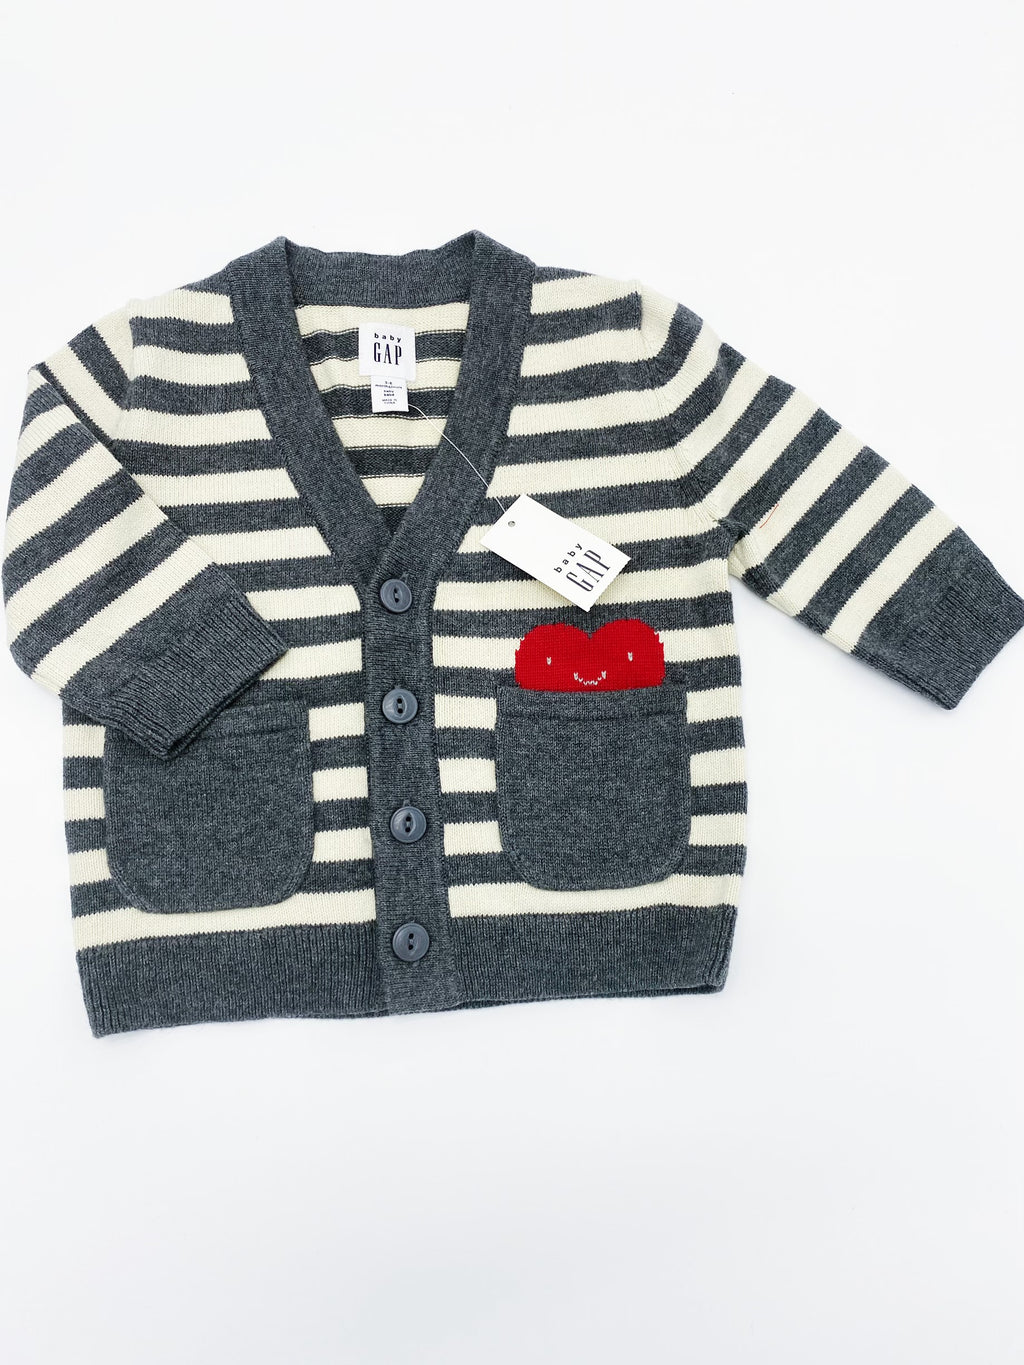 Gap sweater 3-6m BRAND NEW WITH TAGS